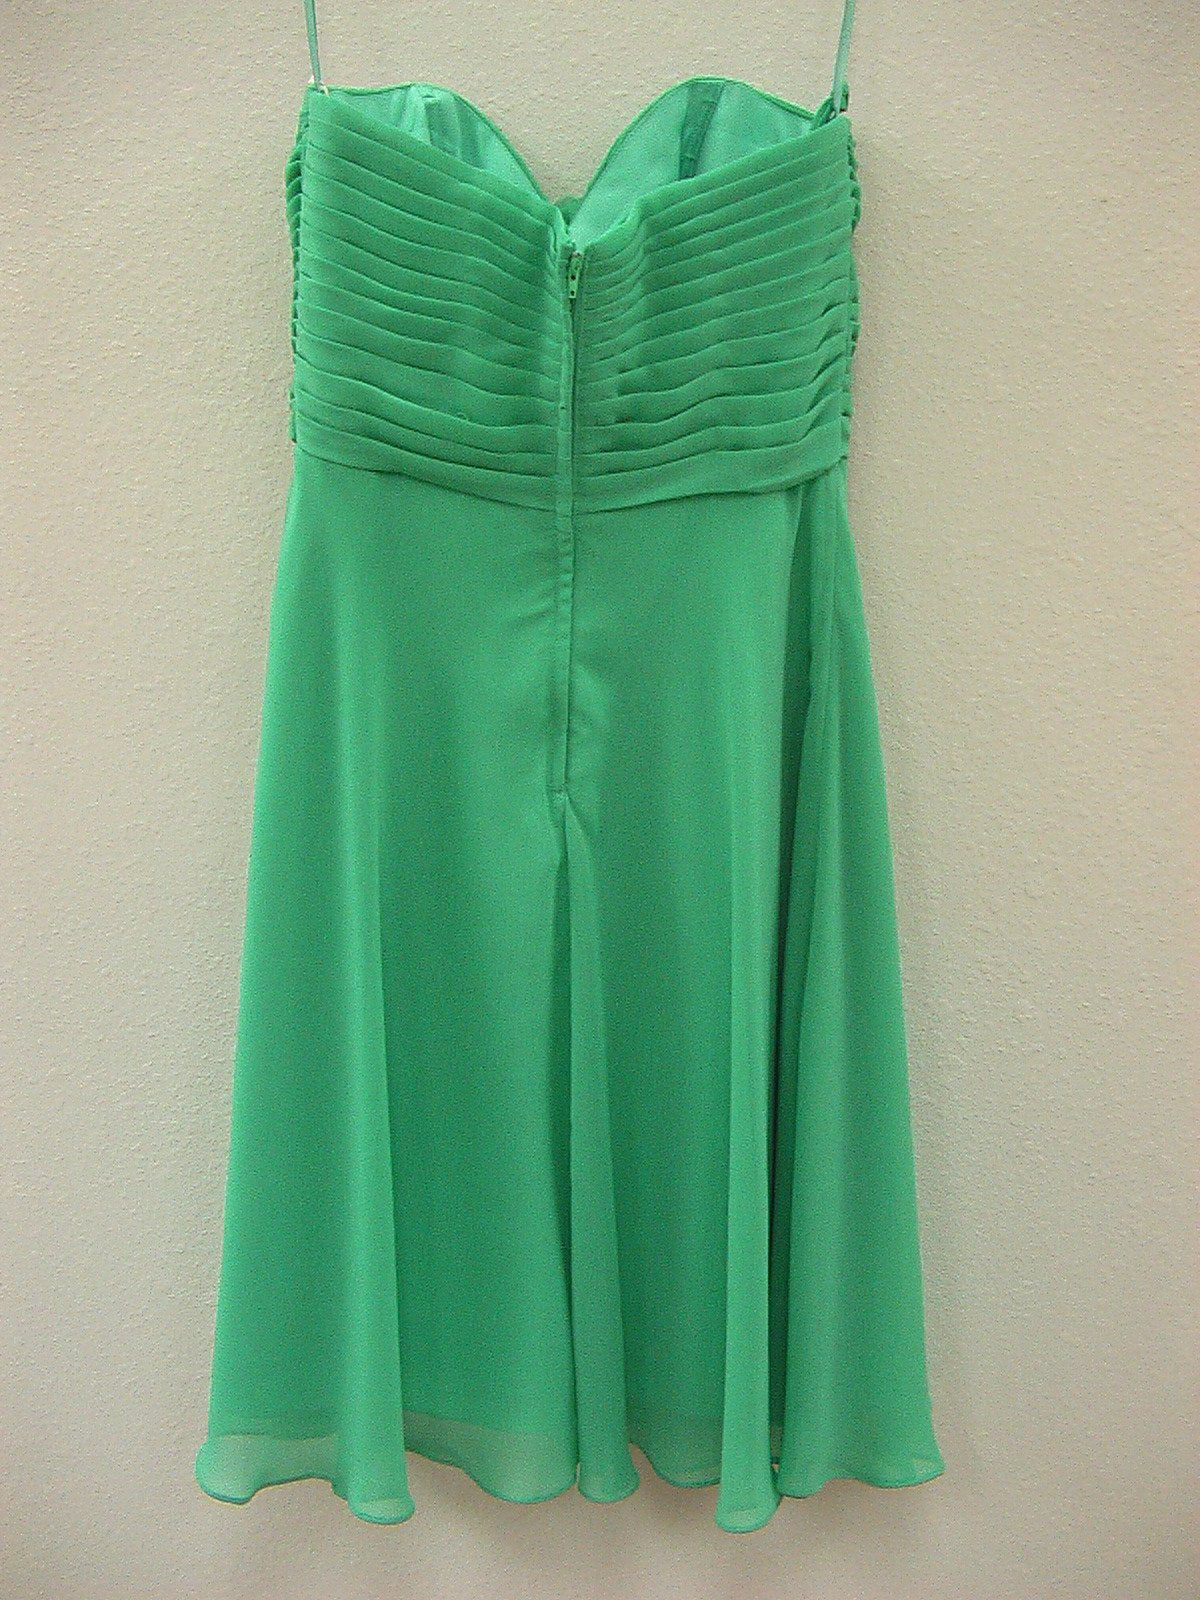 Allure 1264 Juniper Size 10 In Stock Bridesmaid Dress - Tom's Bridal